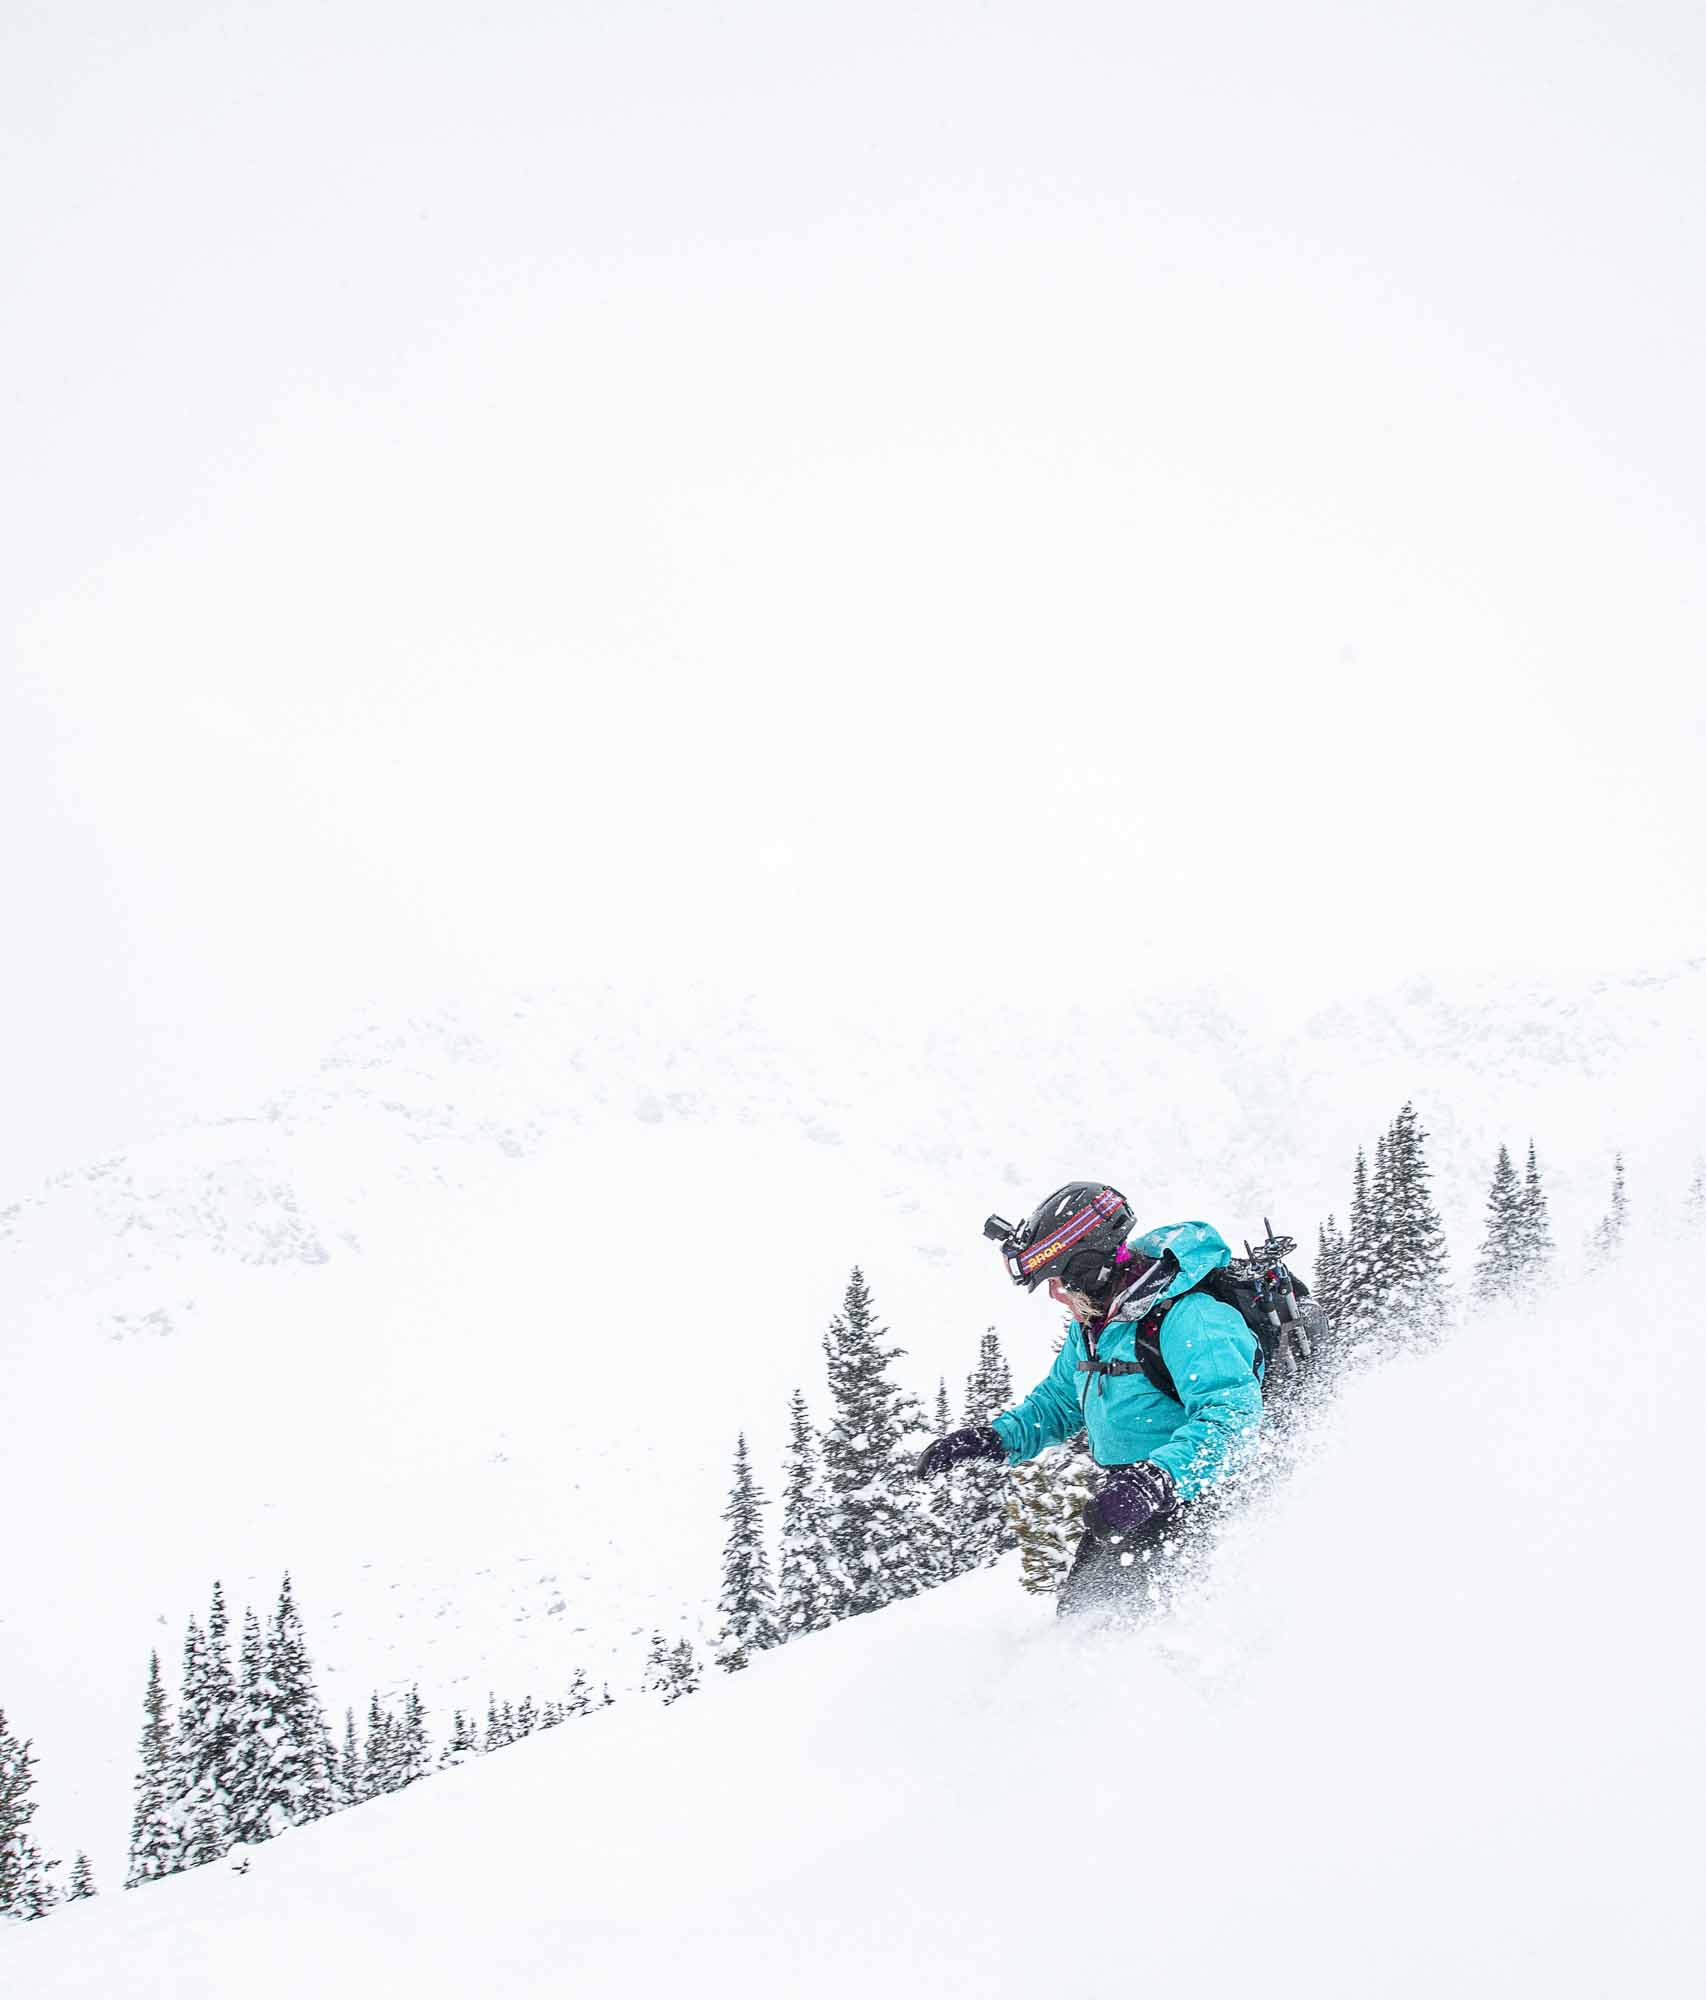 Into-the-Great-White-Open-Moms-Shred-Golden-BC-Kristin-Schnelten-Kicking-Horse-snowboarder